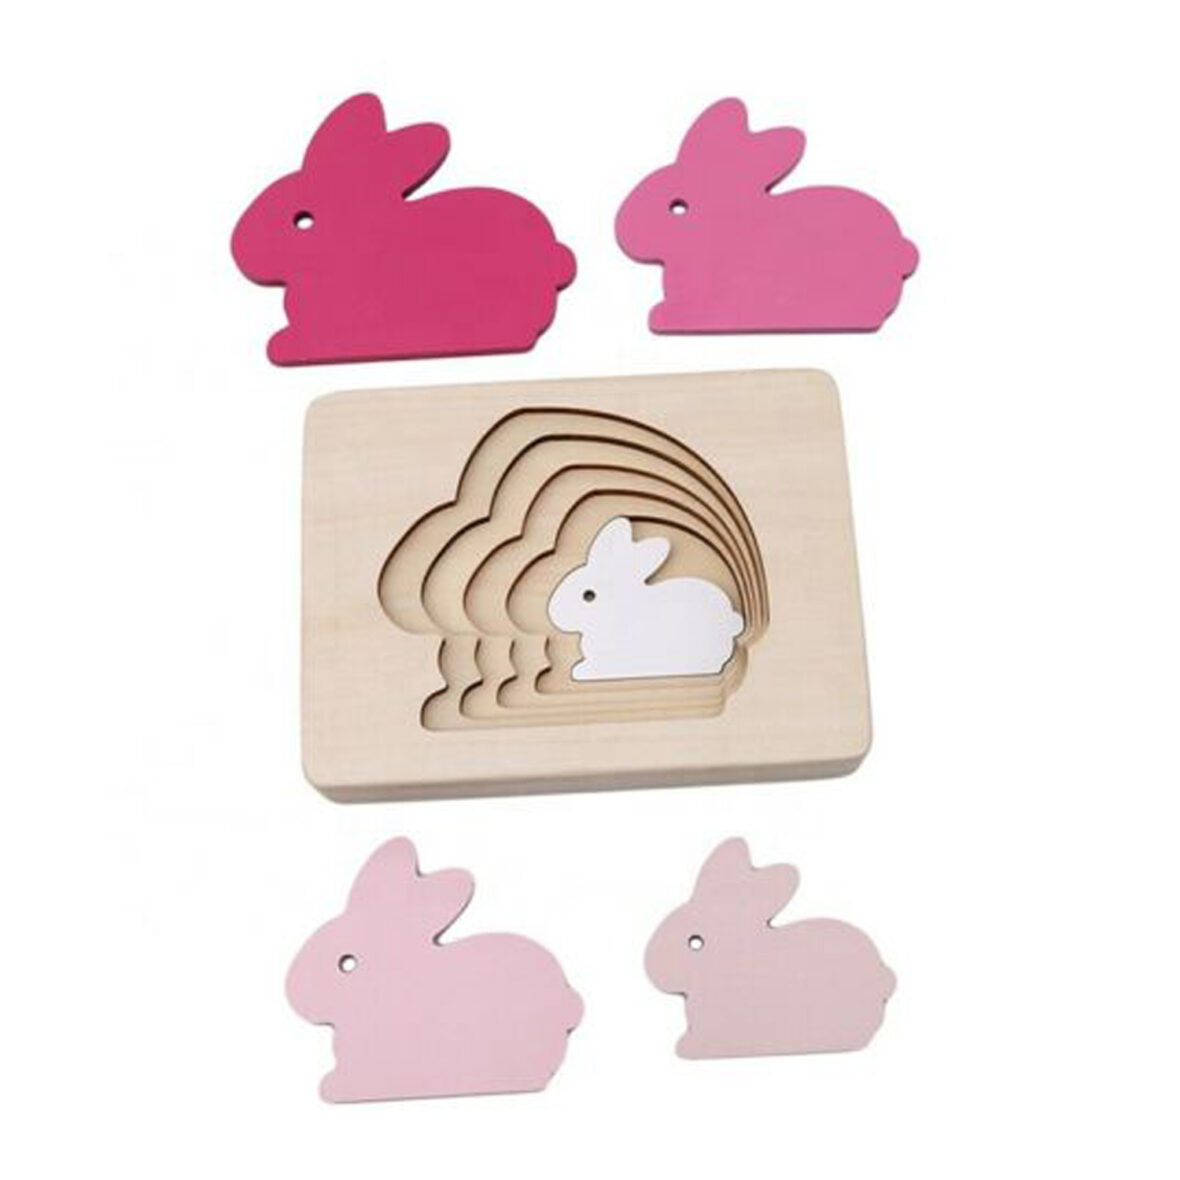 Baby wooden 3D Jigsaw Puzzle Toy – Rabbit